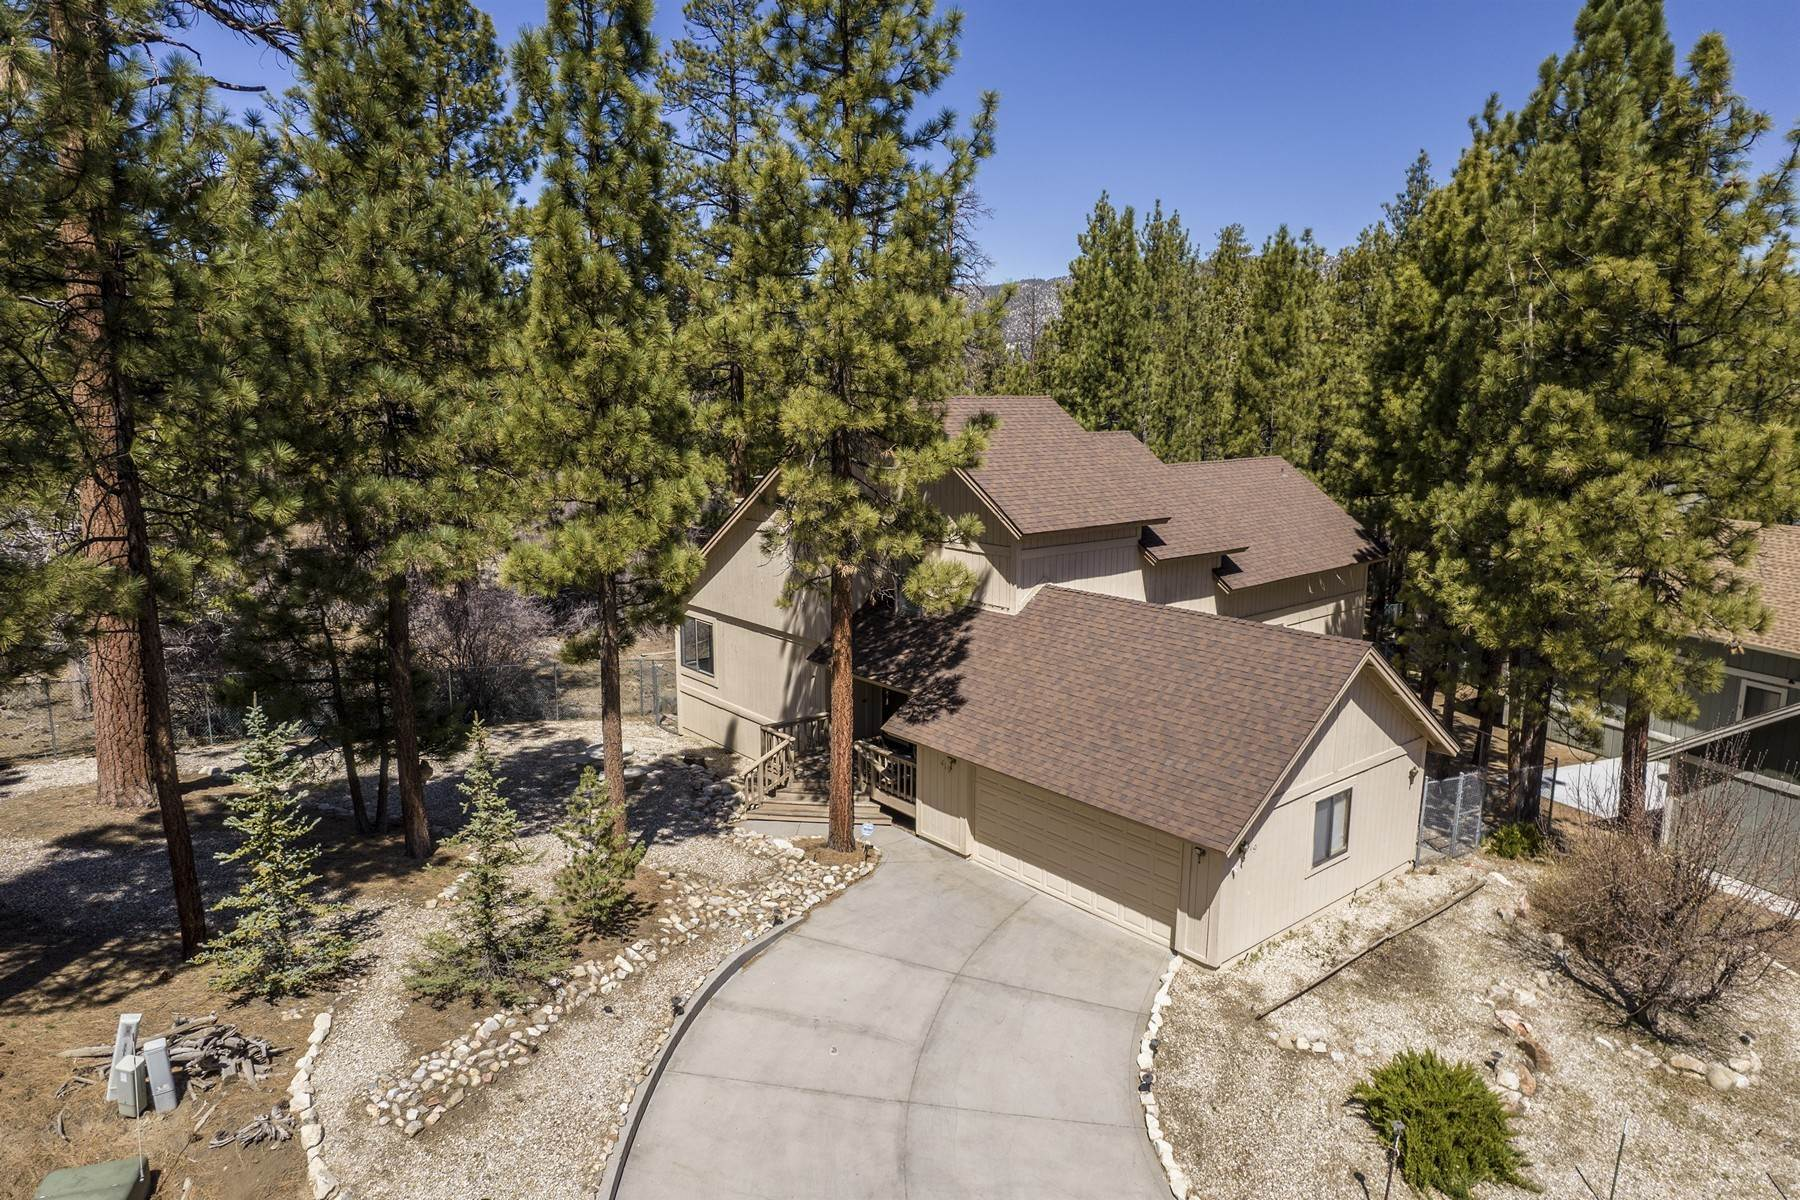 Single Family Homes for Sale at 419 Woodcreek Drive, Big Bear City, California 92314 419 Woodcreek Drive Big Bear City, California 92314 United States